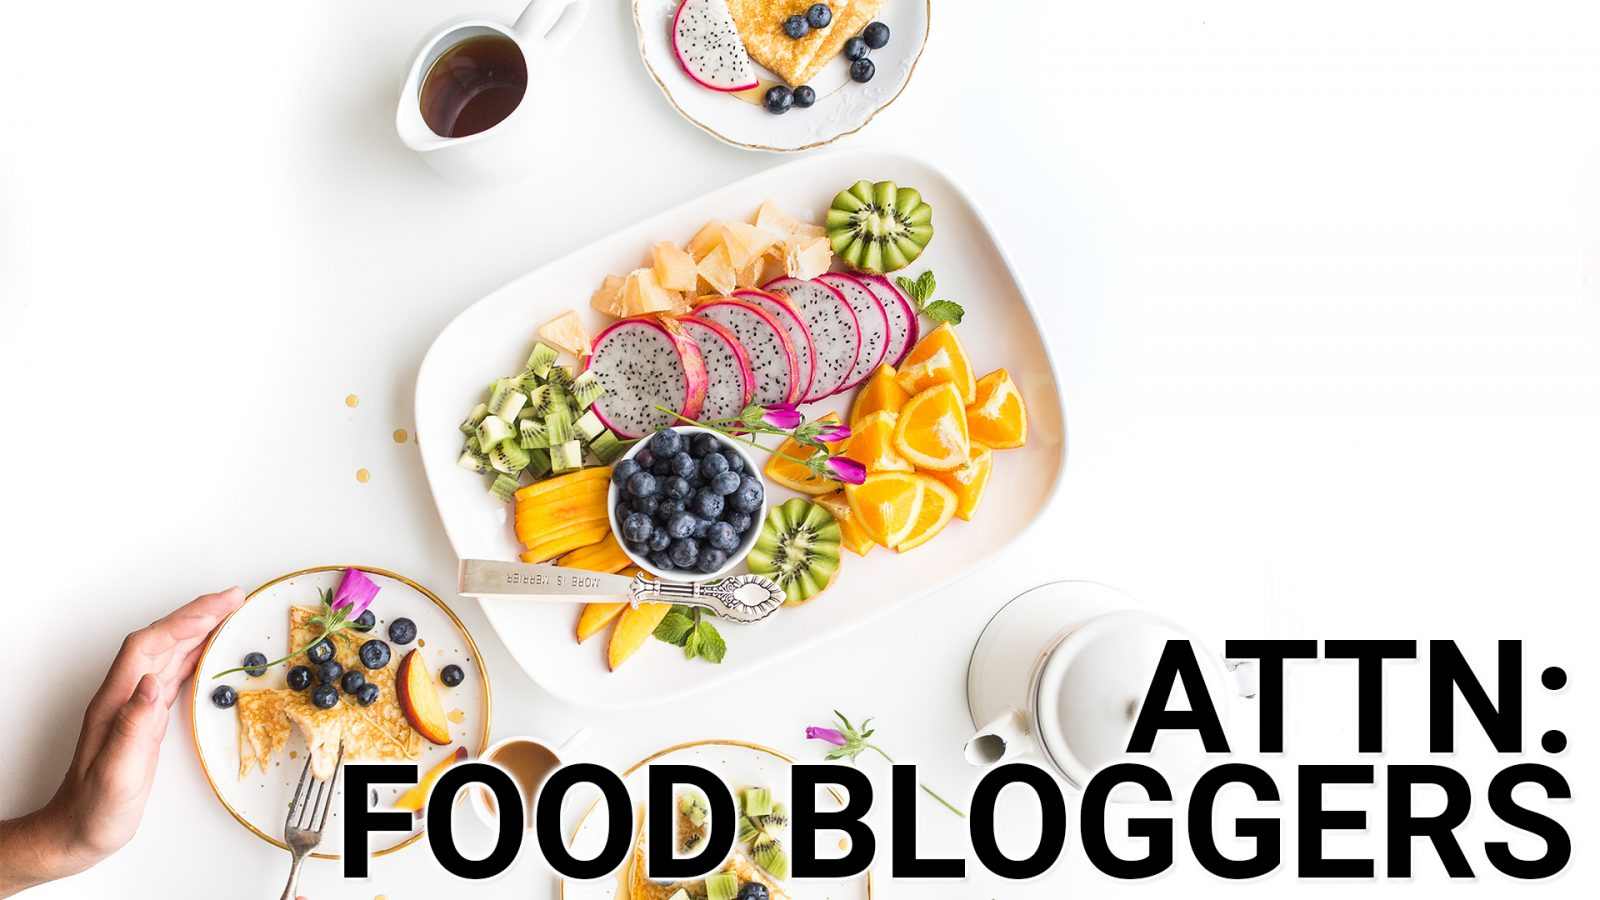 Food bloggers cut to the recipe creator hype food bloggers anchor link forumfinder Images